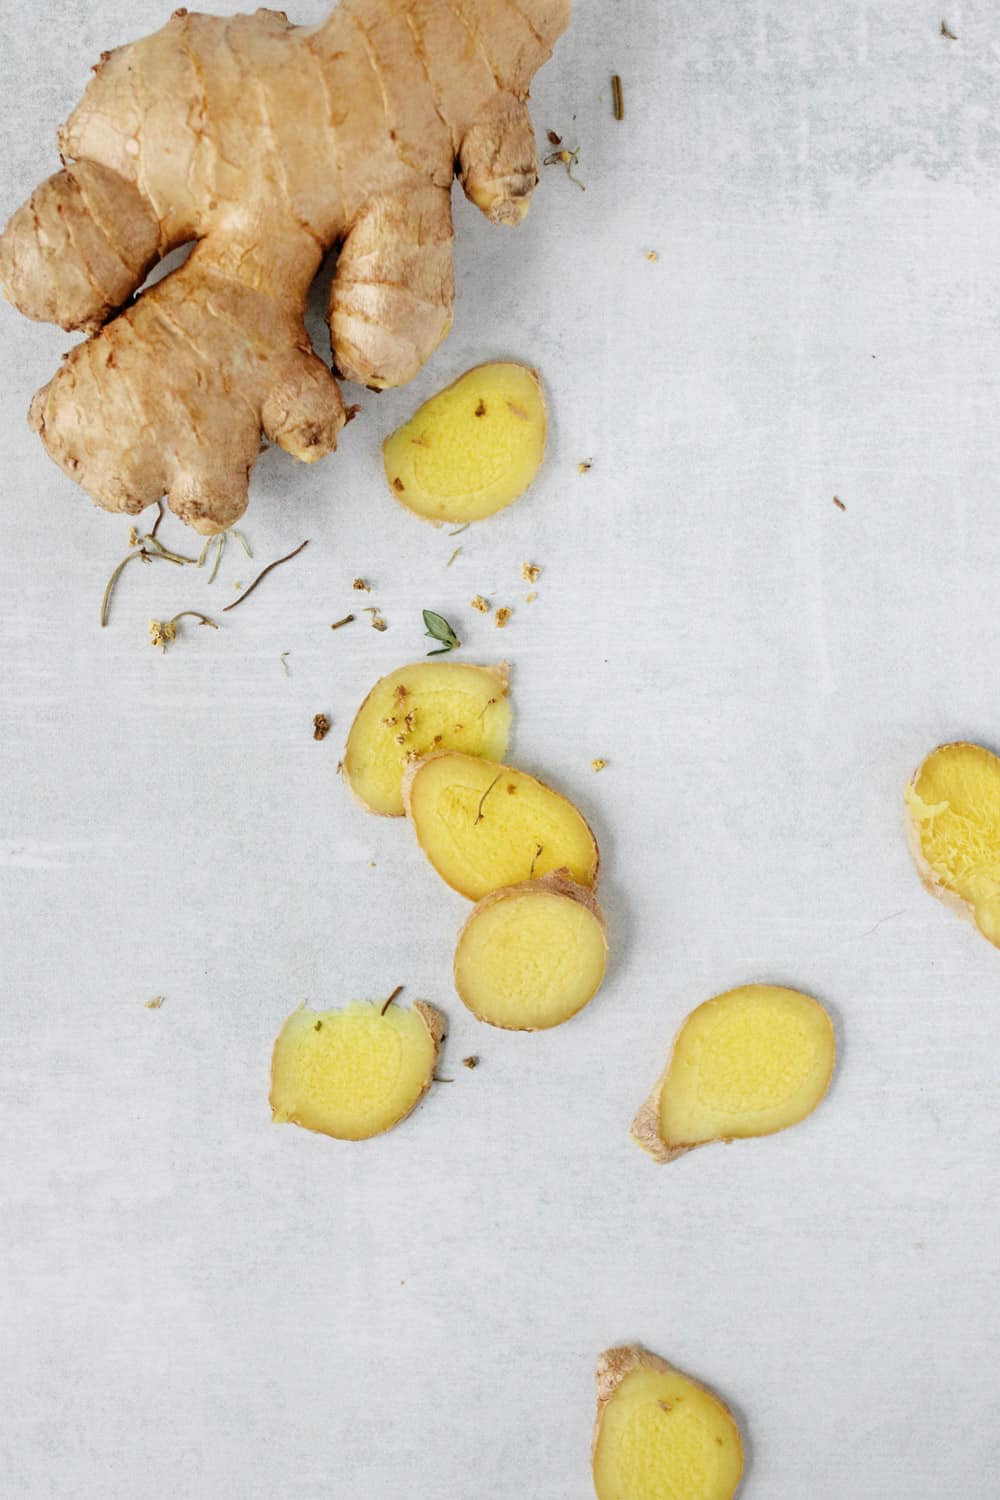 Homemade Ginger Tea + The Health Benefits of Ginger